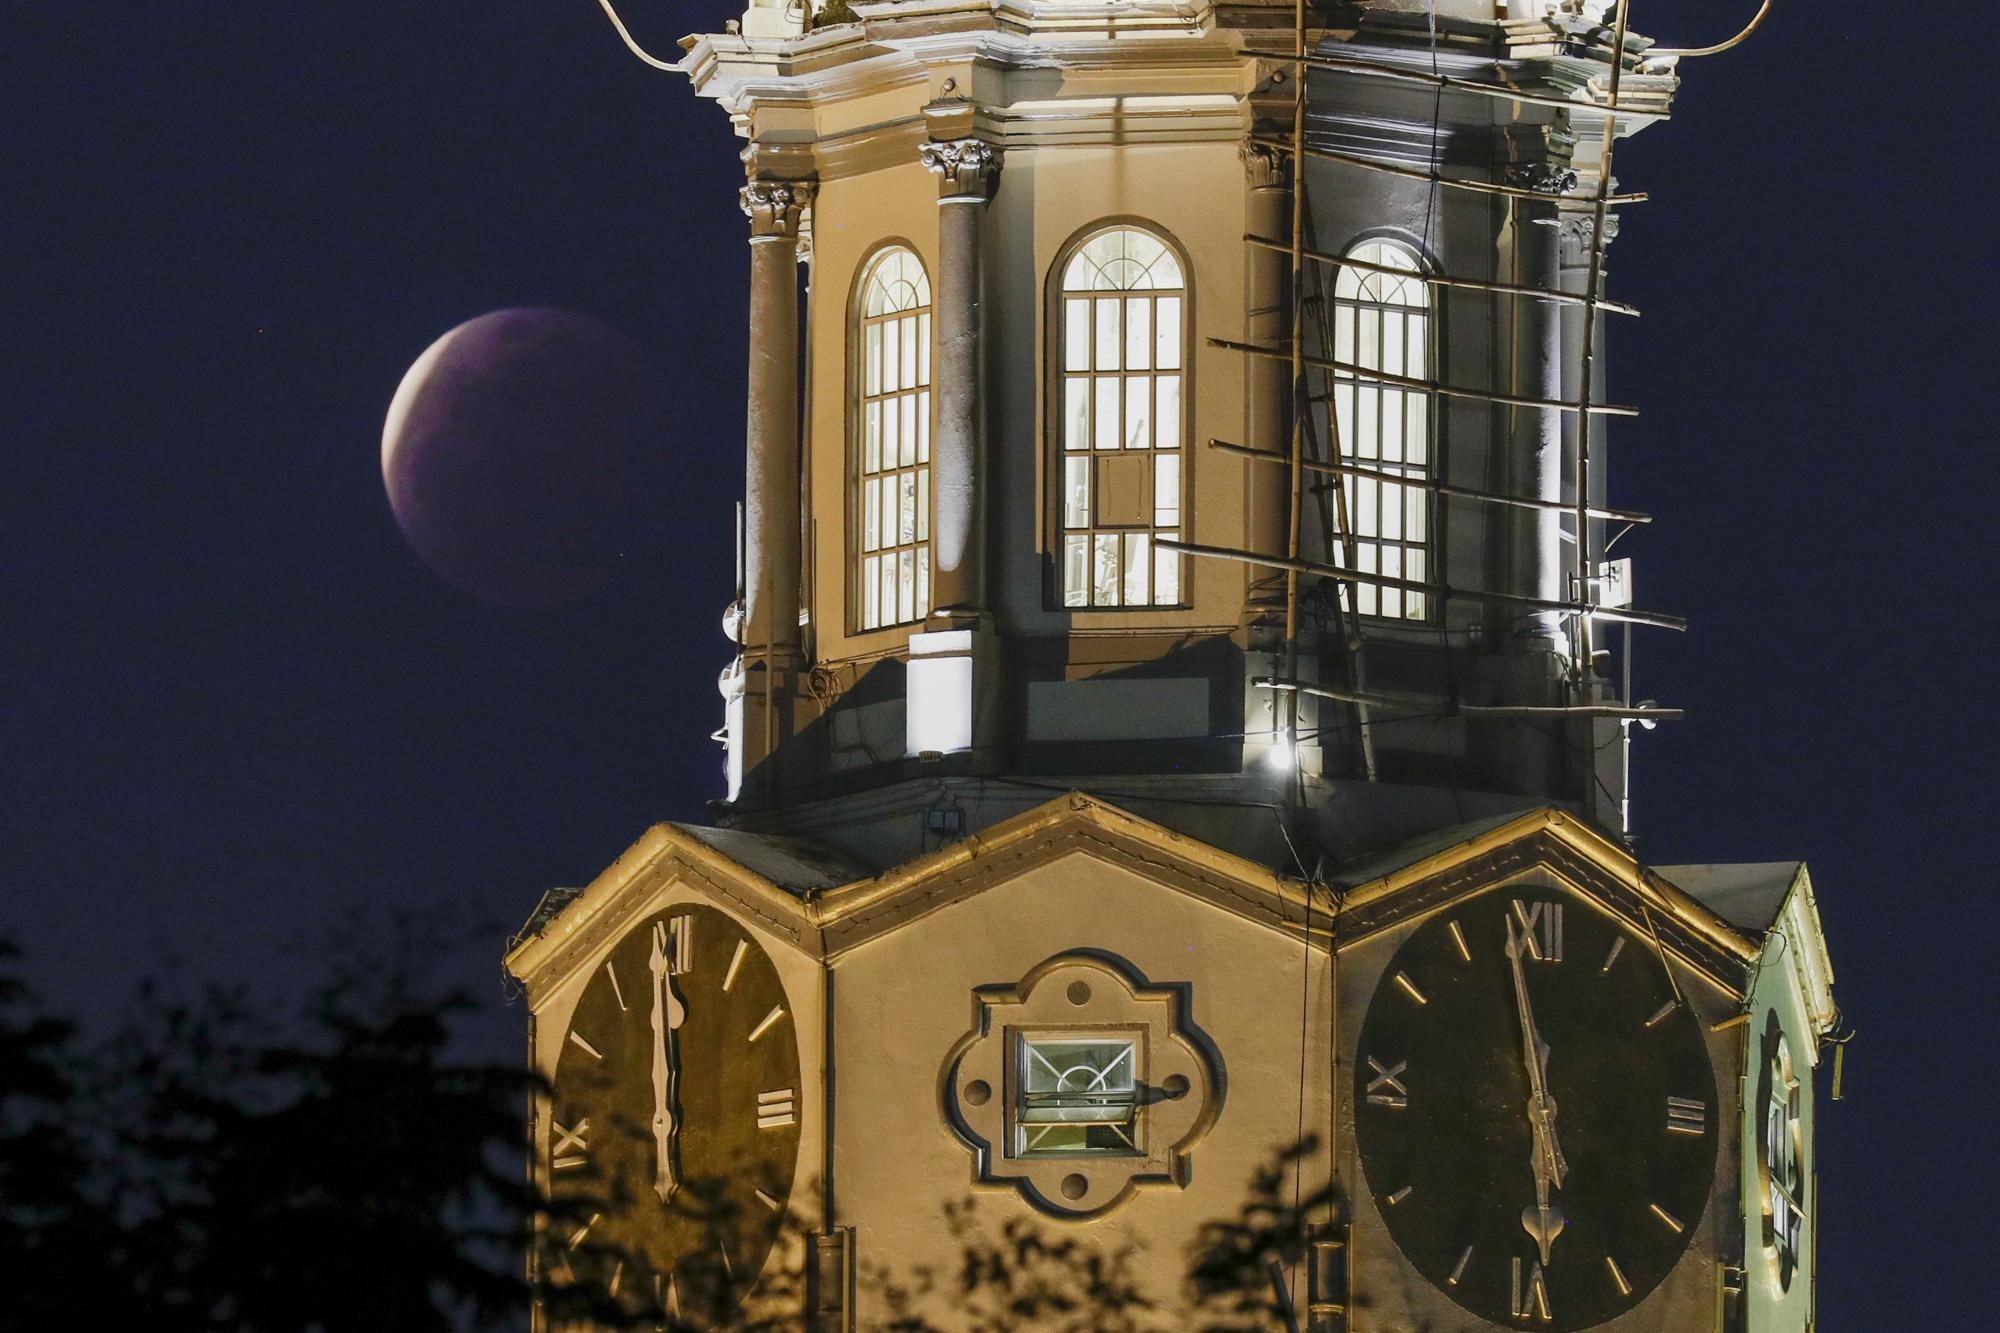 A lunar eclipse occurs beside the clock tower of the Manila City Hall, Philippines, Wednesday, May 26, 2021.  (AP Photo/Aaron Favila)